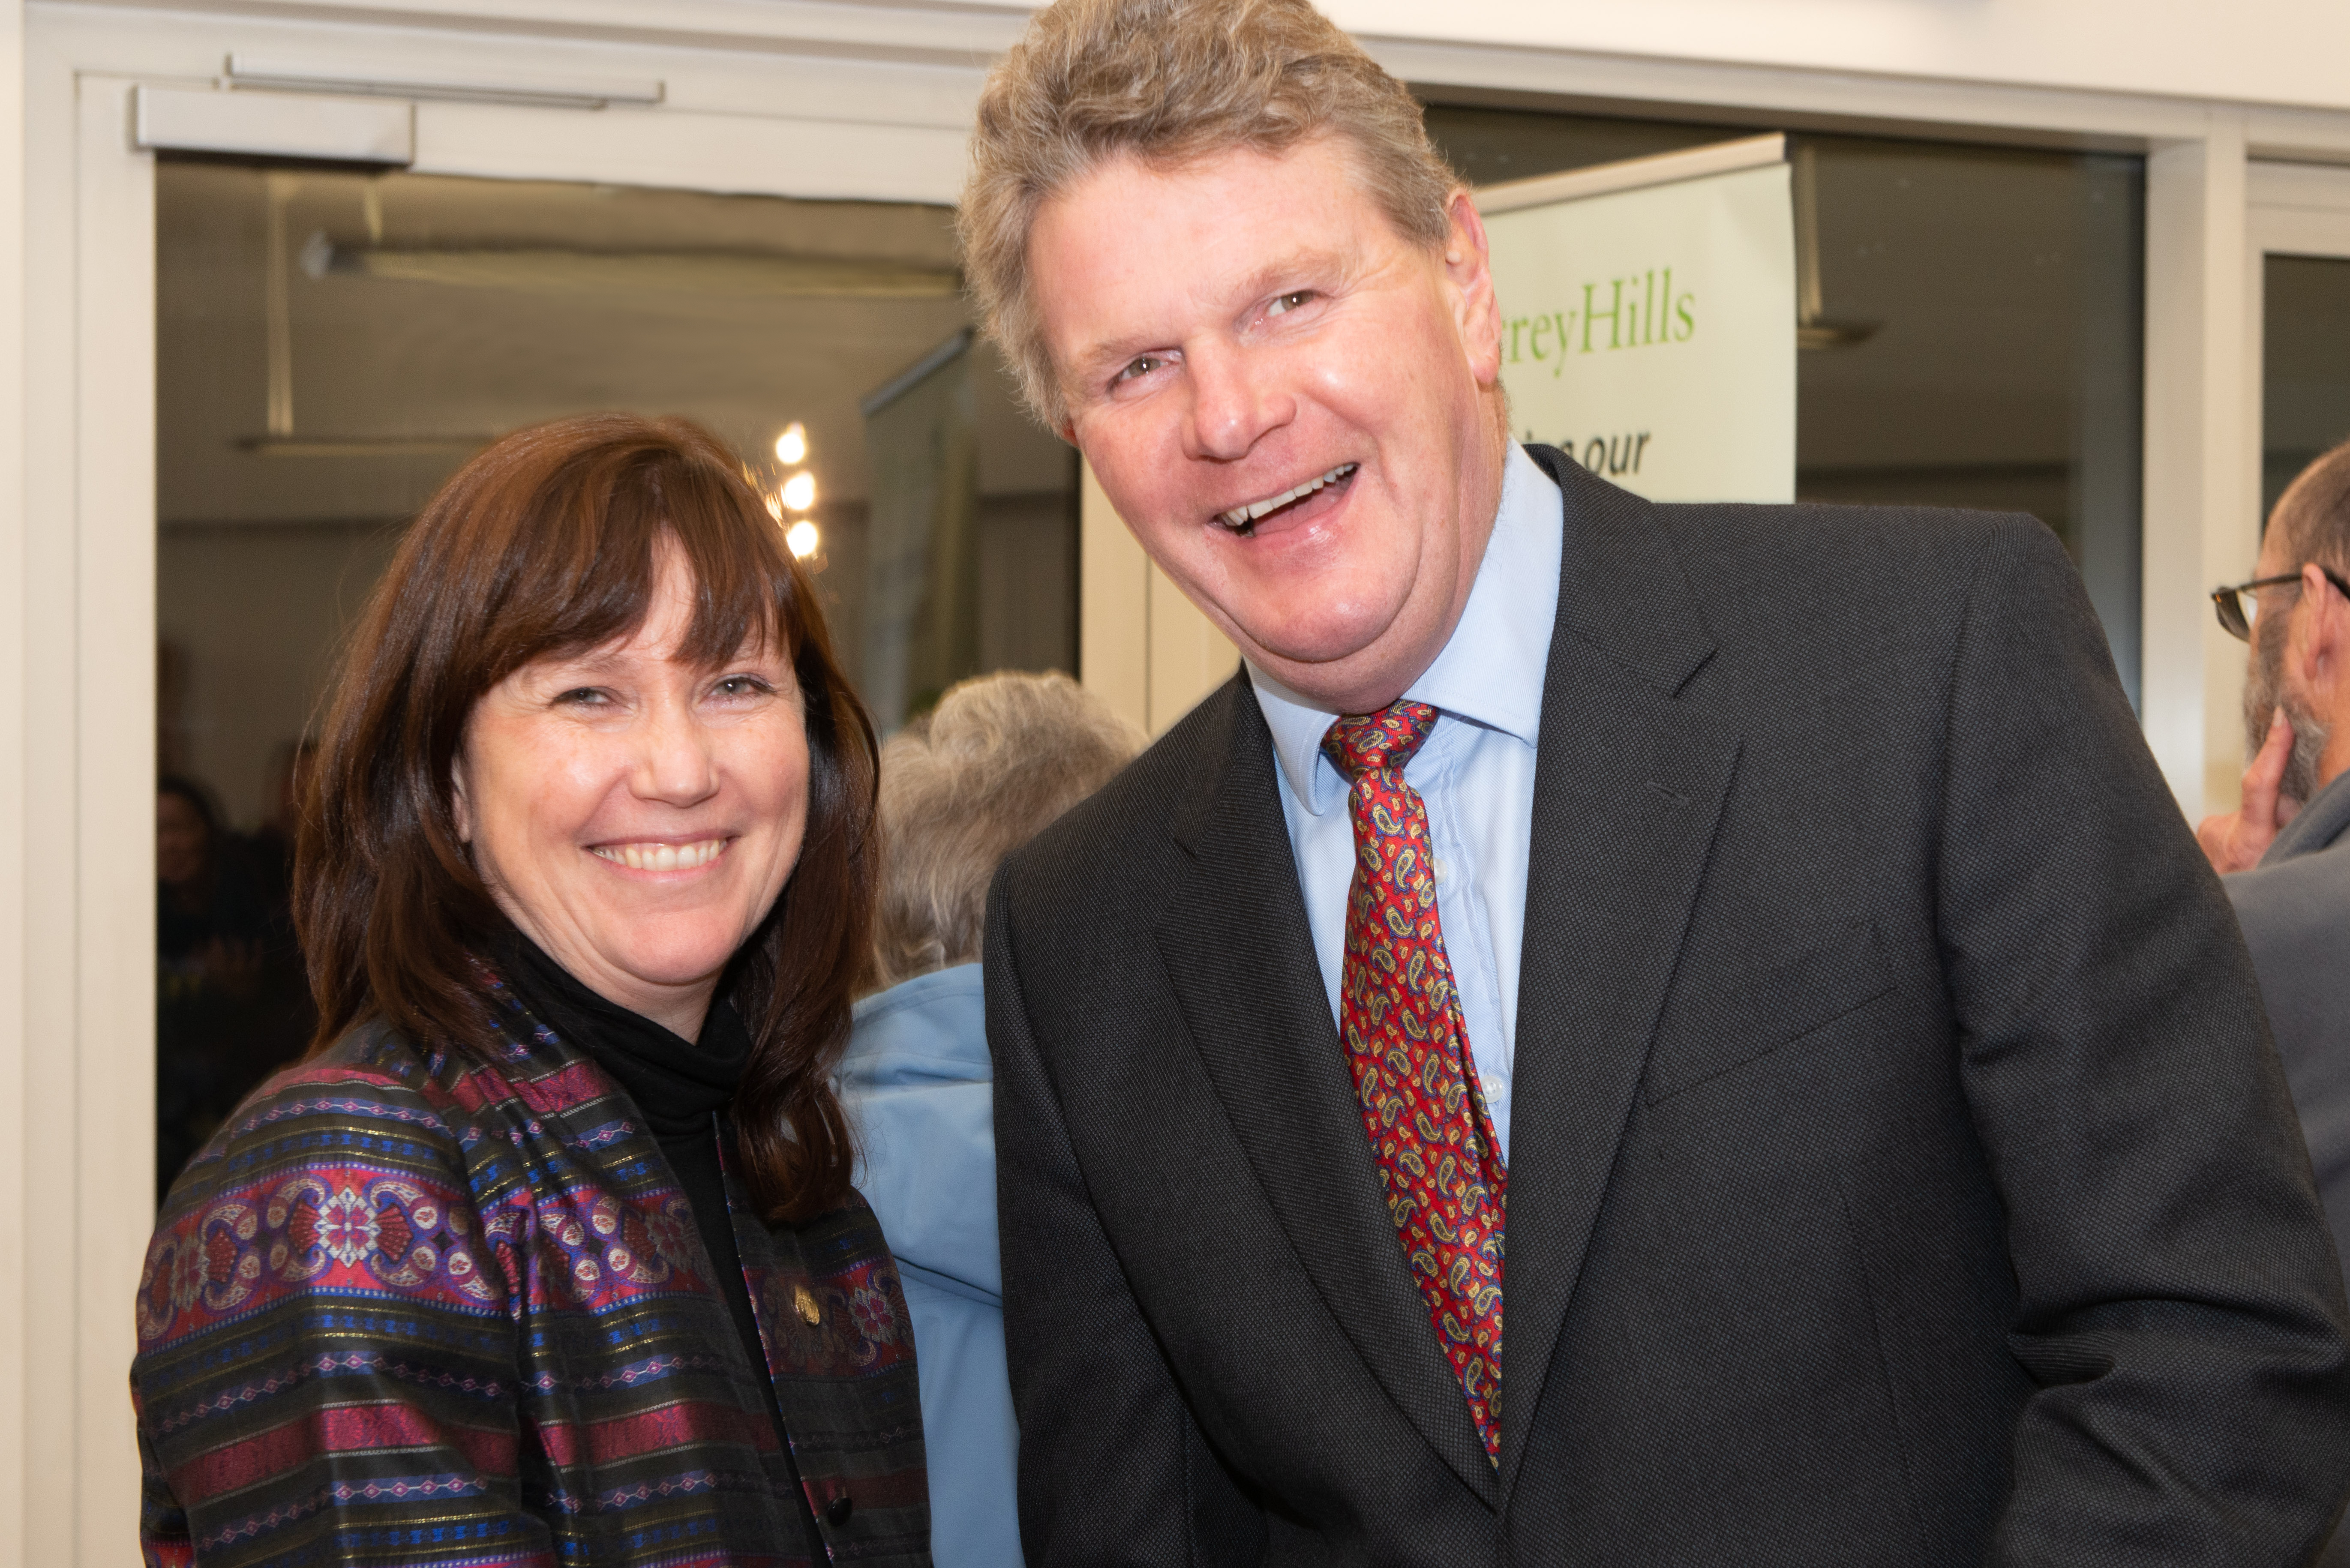 Christine Howard, Vice President of the Surrey Hills Society and Bill Biddel, the Vice Lord-Lieutenant of Surrey